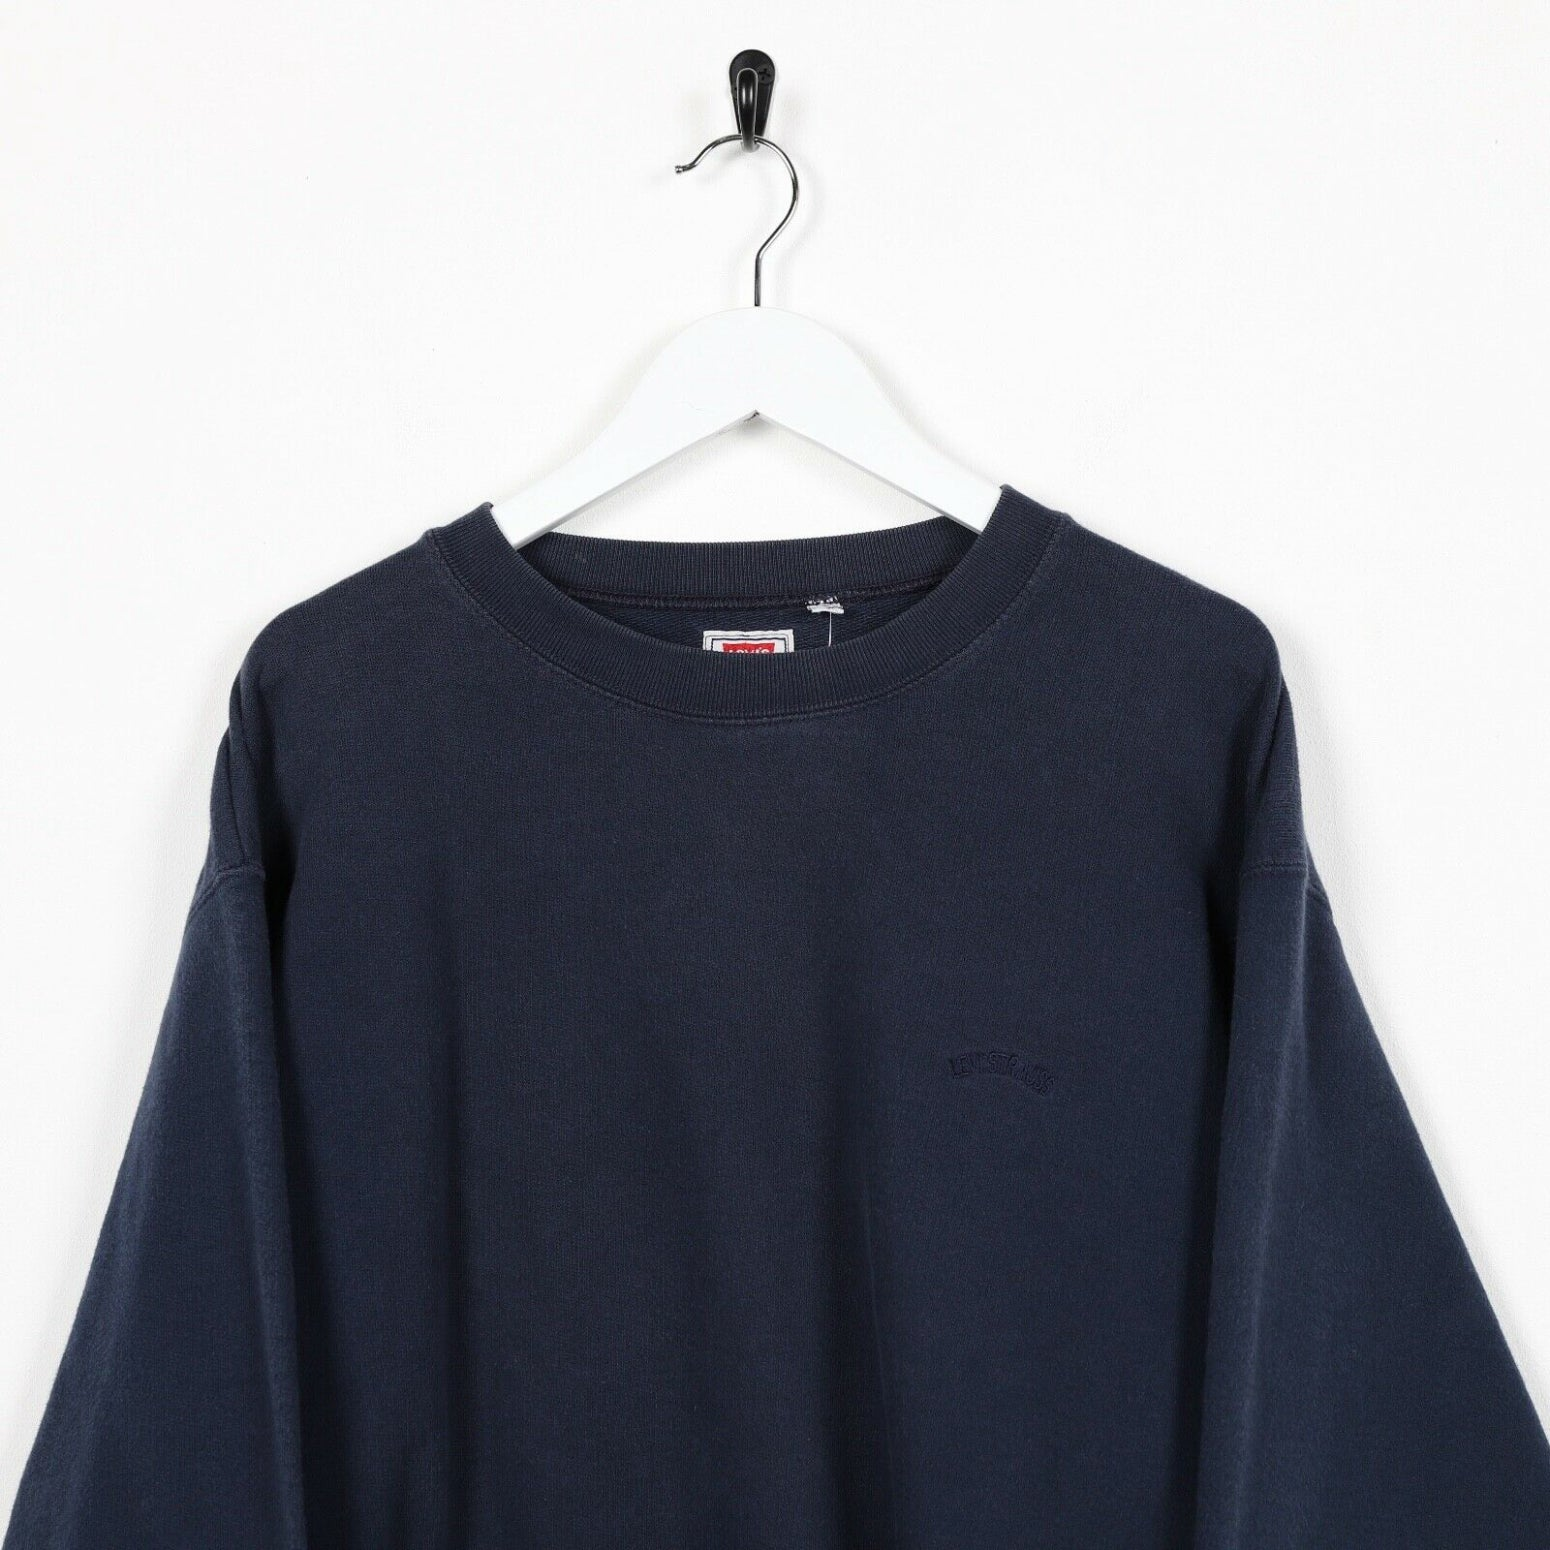 Vintage 90's LEVI'S Small Spell Out Sweatshirt Jumper Navy Blue | Large L